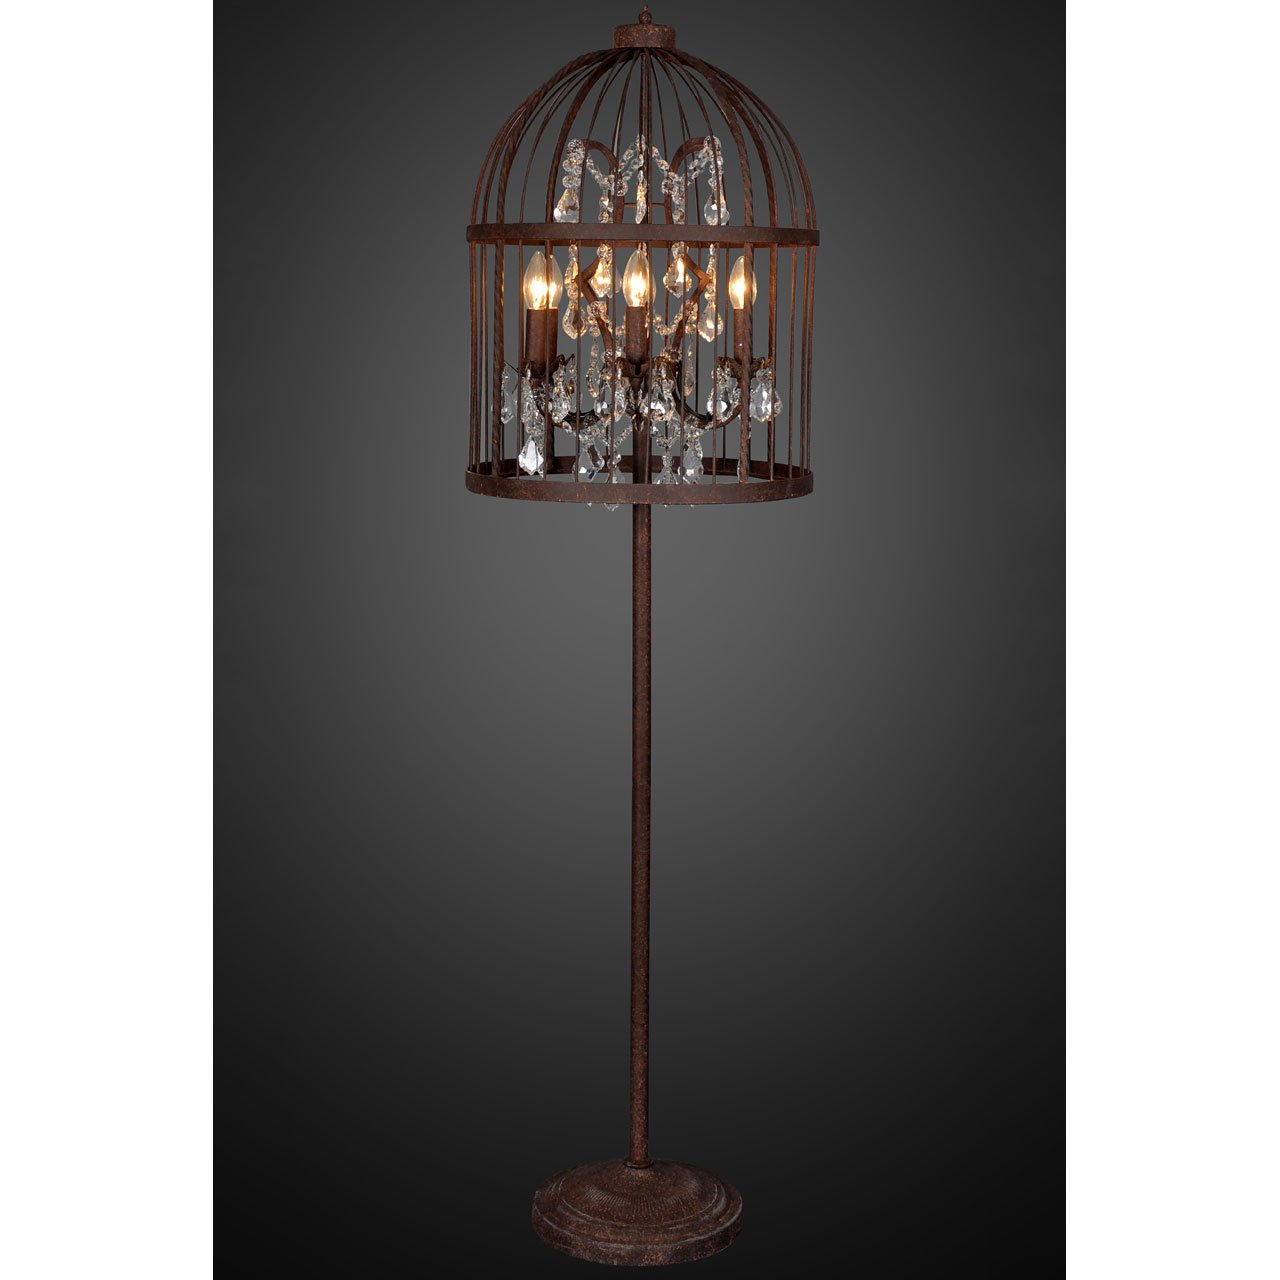 lamp in wall loft vintage for birdcage edison with metal led home retro item nordic bedroom cage sconces industrial lamps switch lighting aisle indoor from